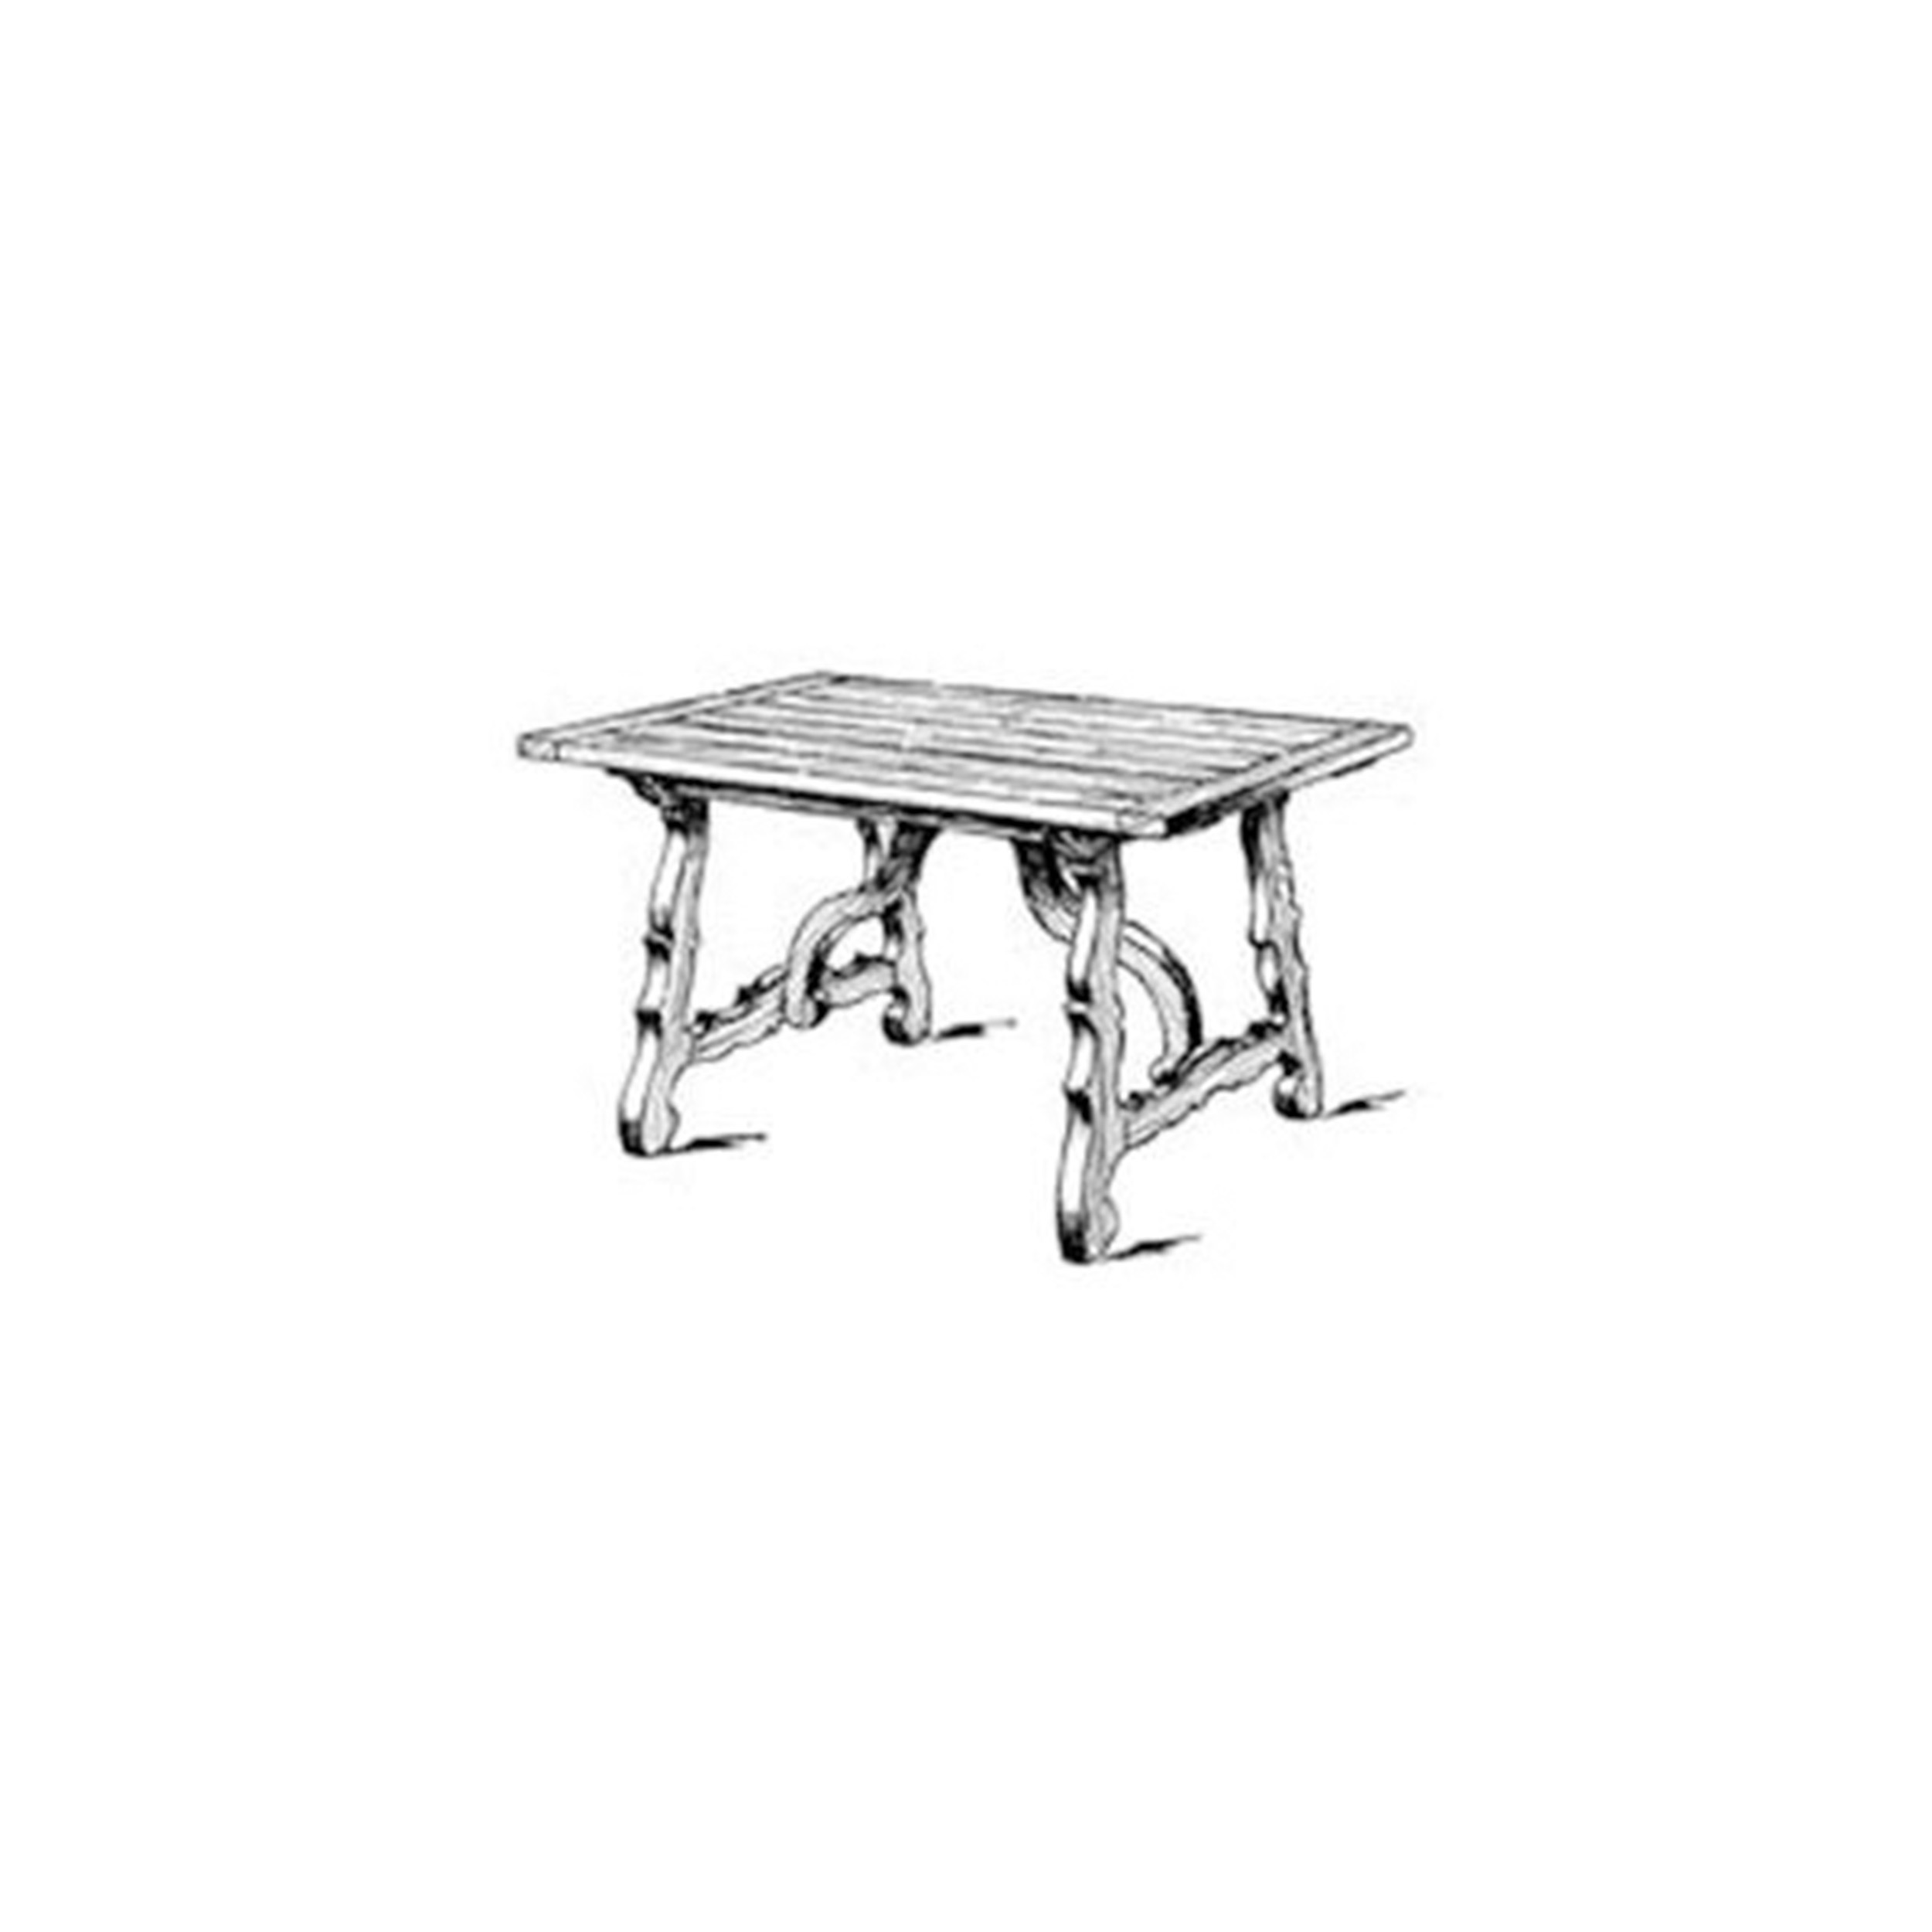 Woodworking Project Paper Plan to Build Spanish Dining Table